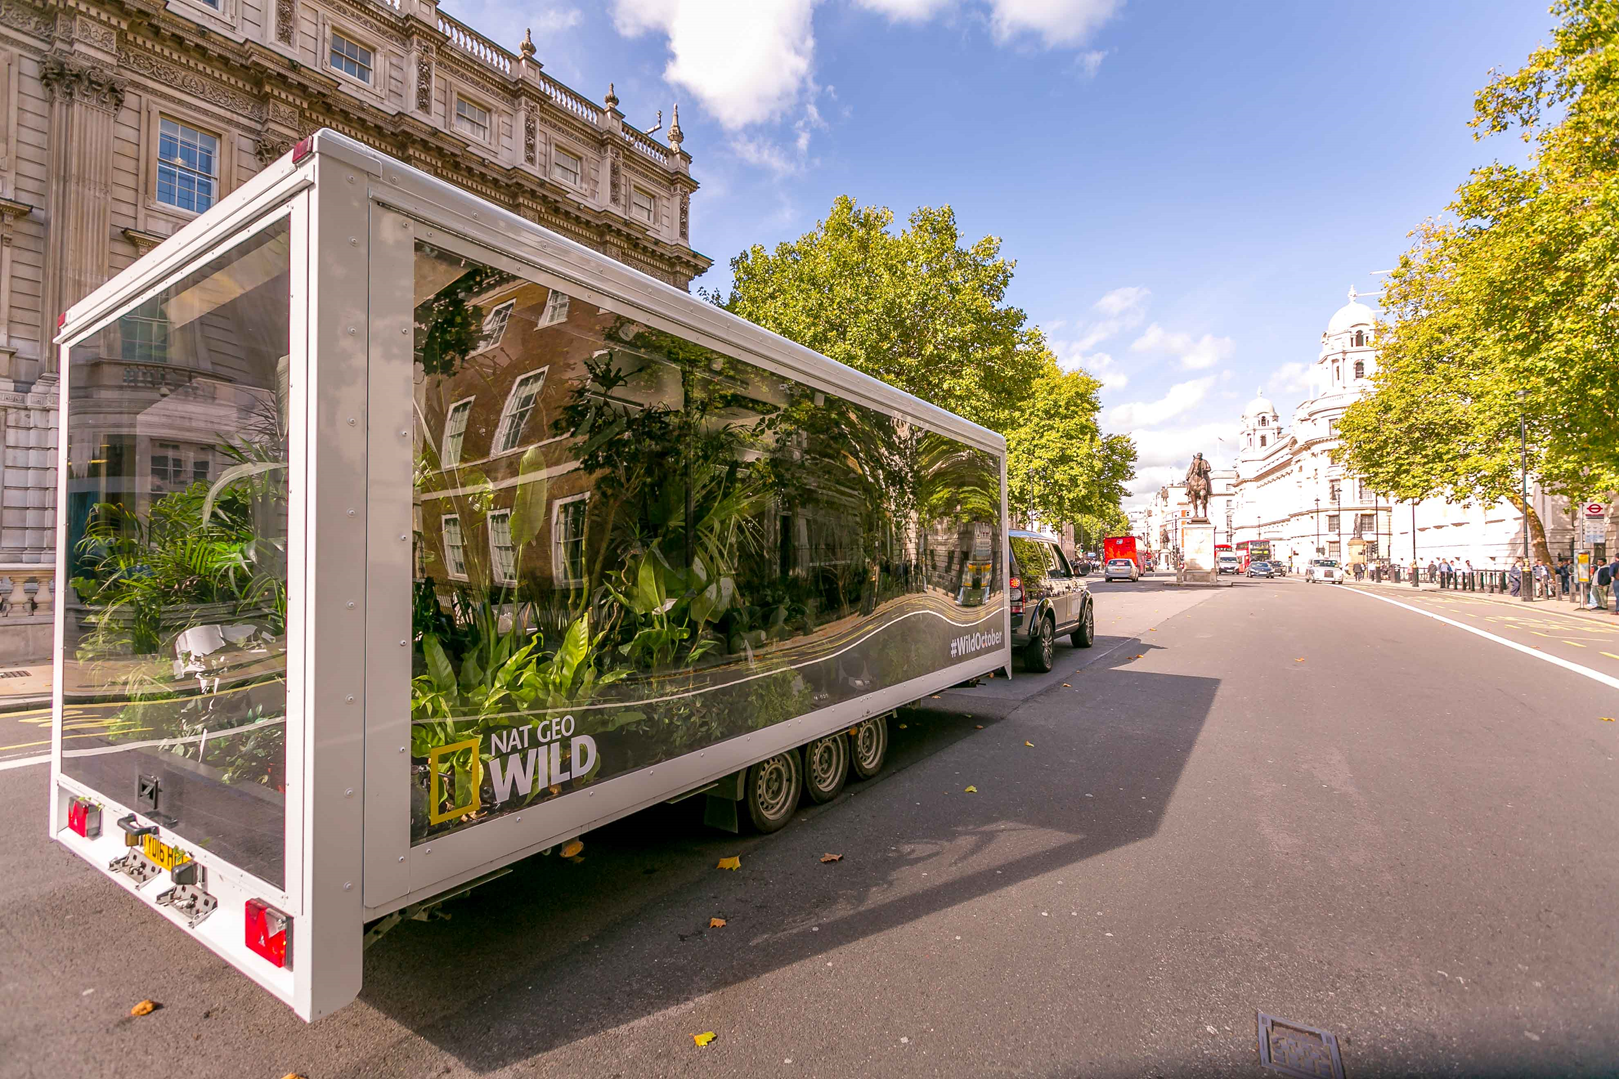 Mobile Experiential Marketing Roadshow Services | B2B Brand Marketing